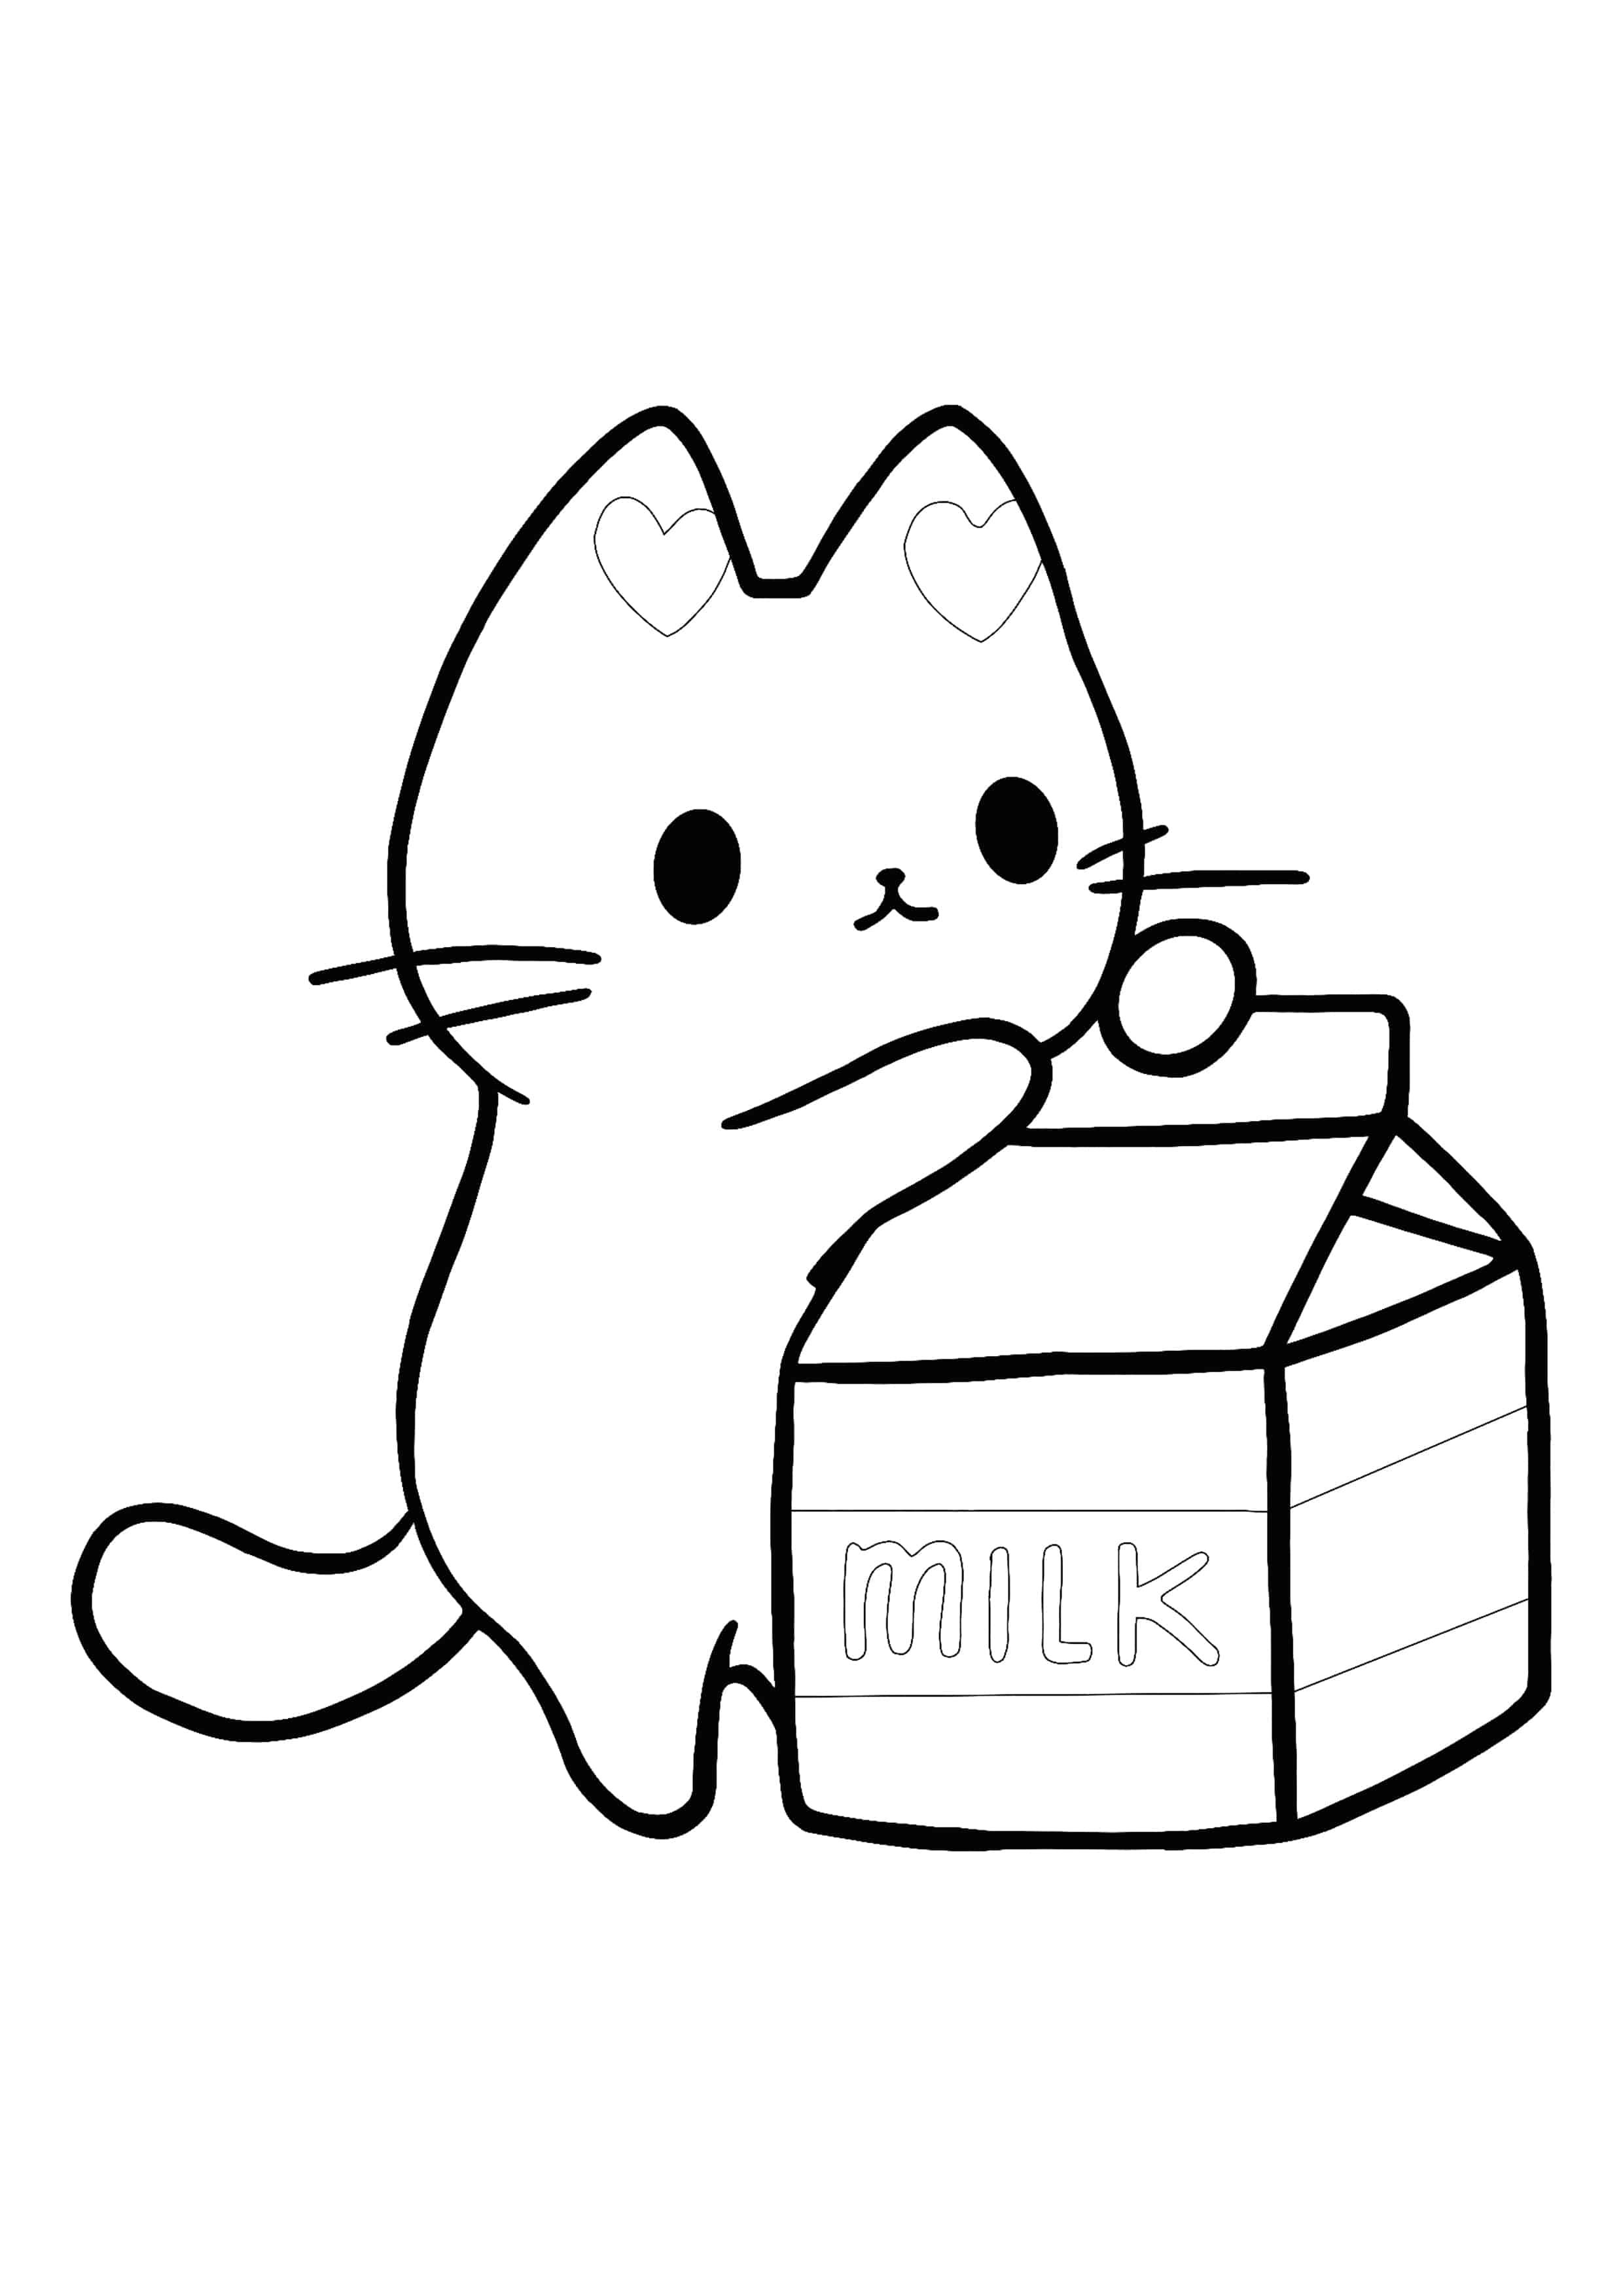 Kawaii Kitten coloring page  Cat coloring page, Kittens coloring